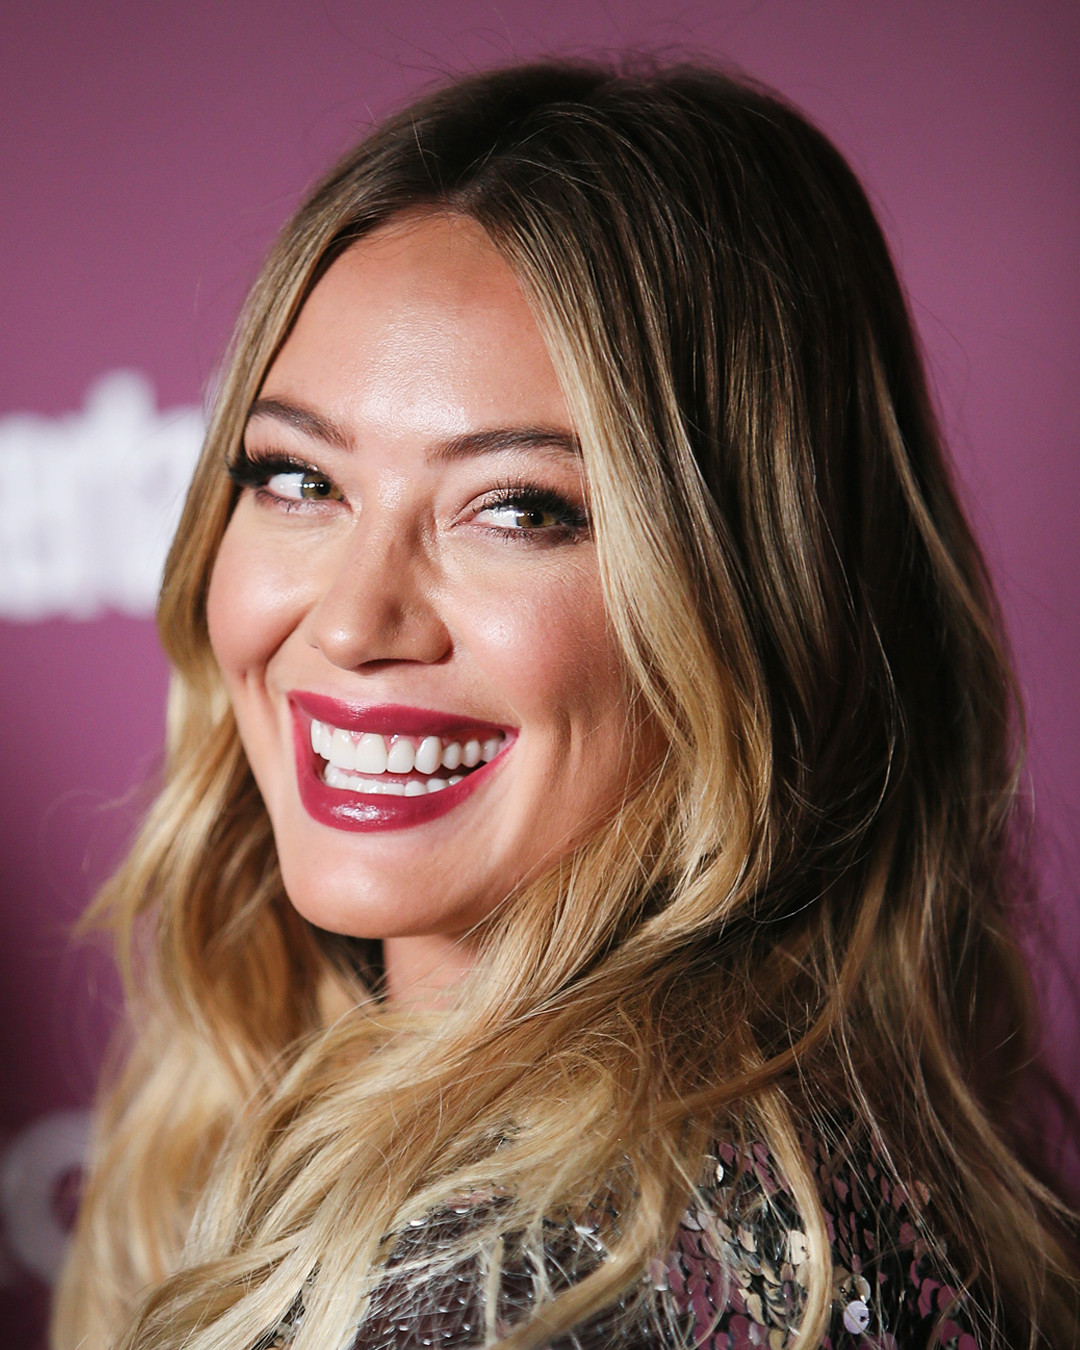 Hilary Duff's Facialist Shares 6 Tips for Dry, Winter Skin ...